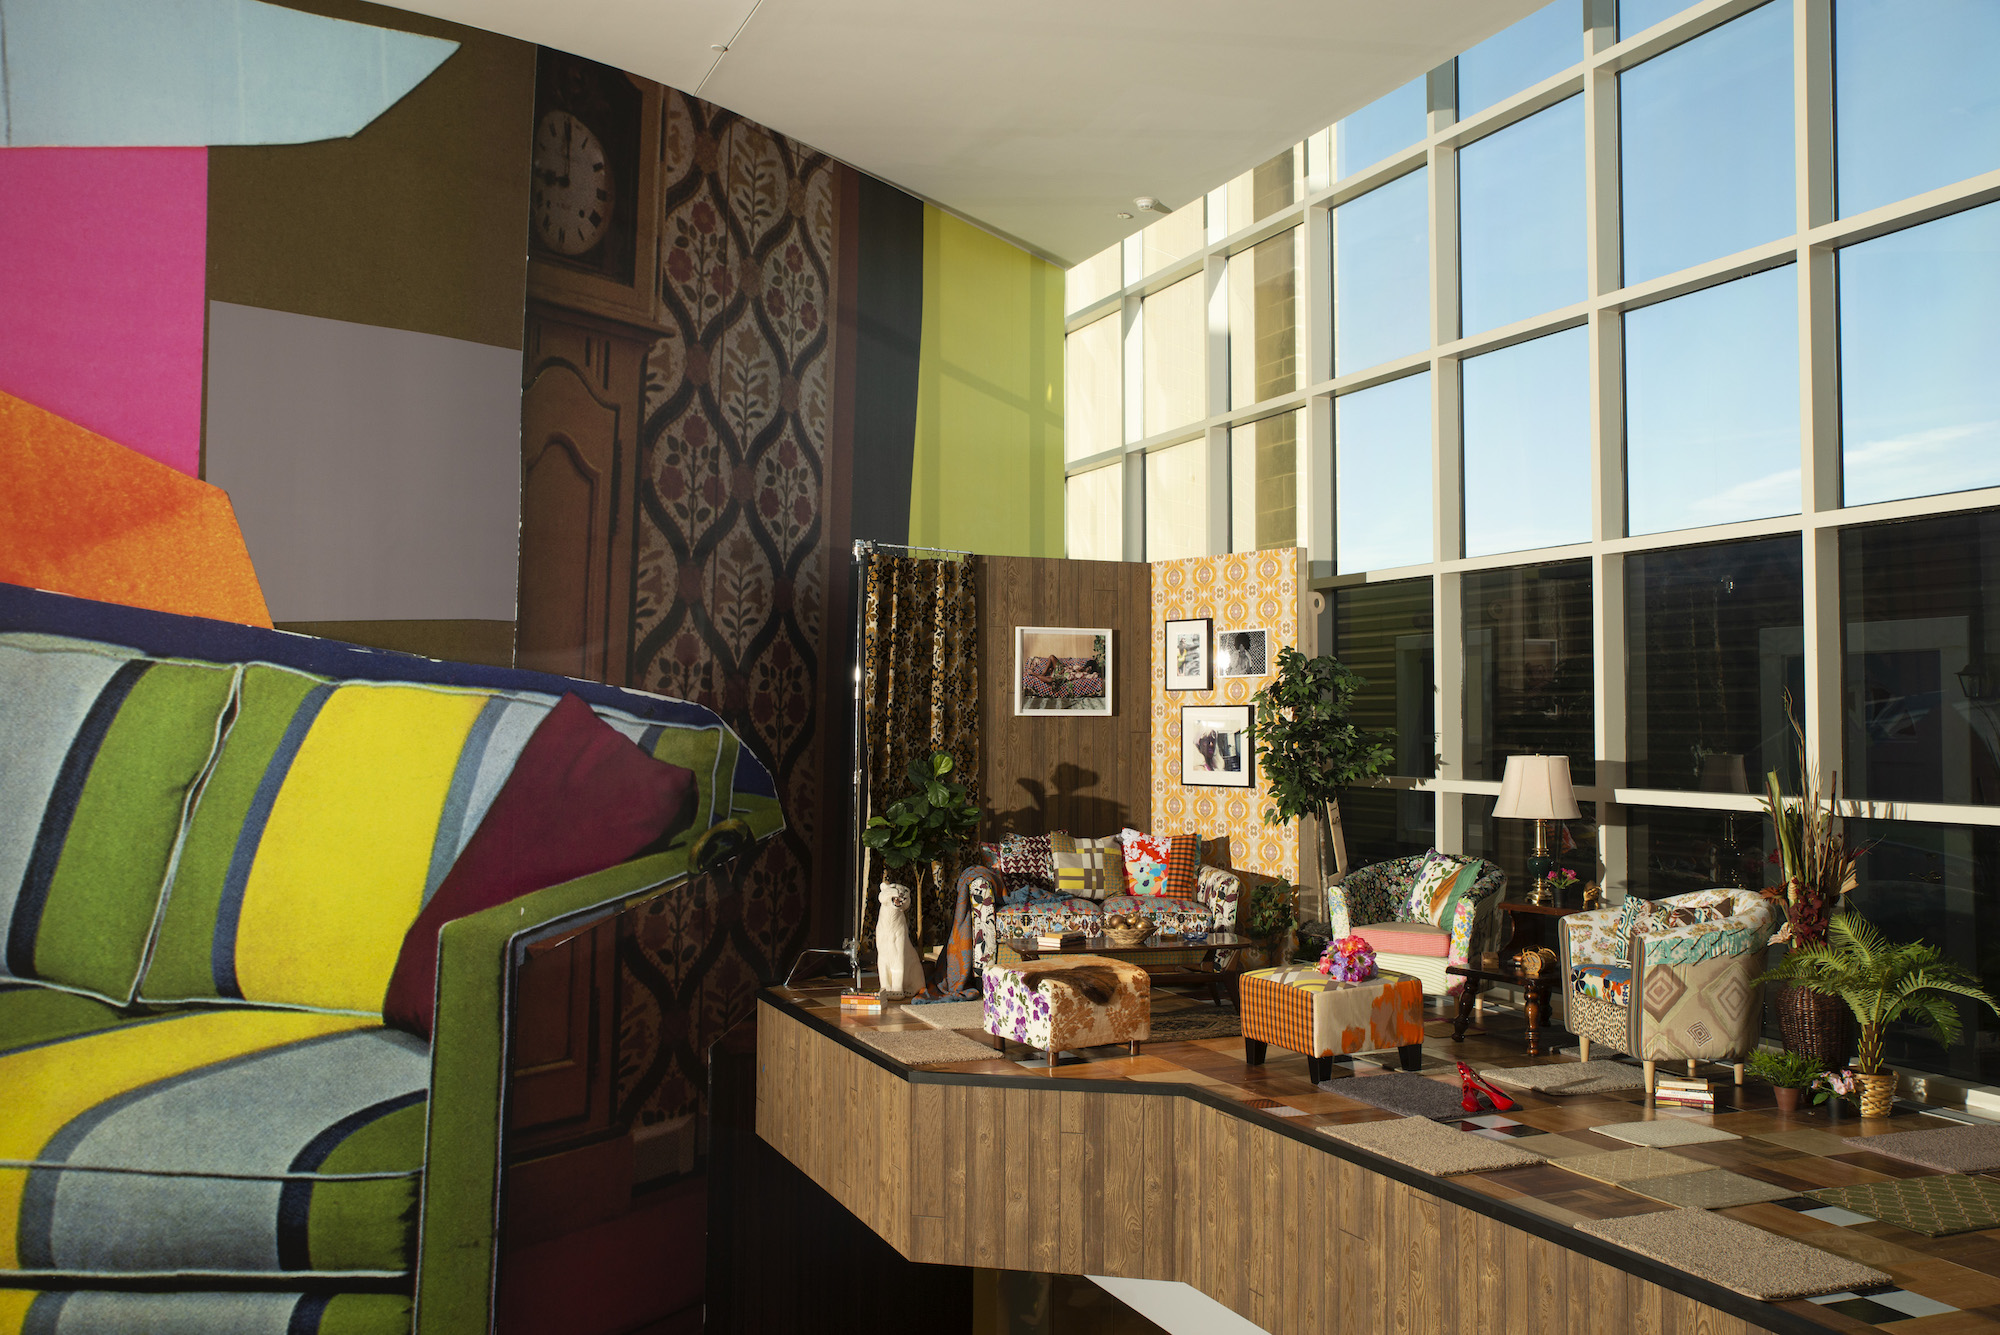 Installation view of Mickalene Thomas: A Moment's Pleasure at the Baltimore Museum of Art